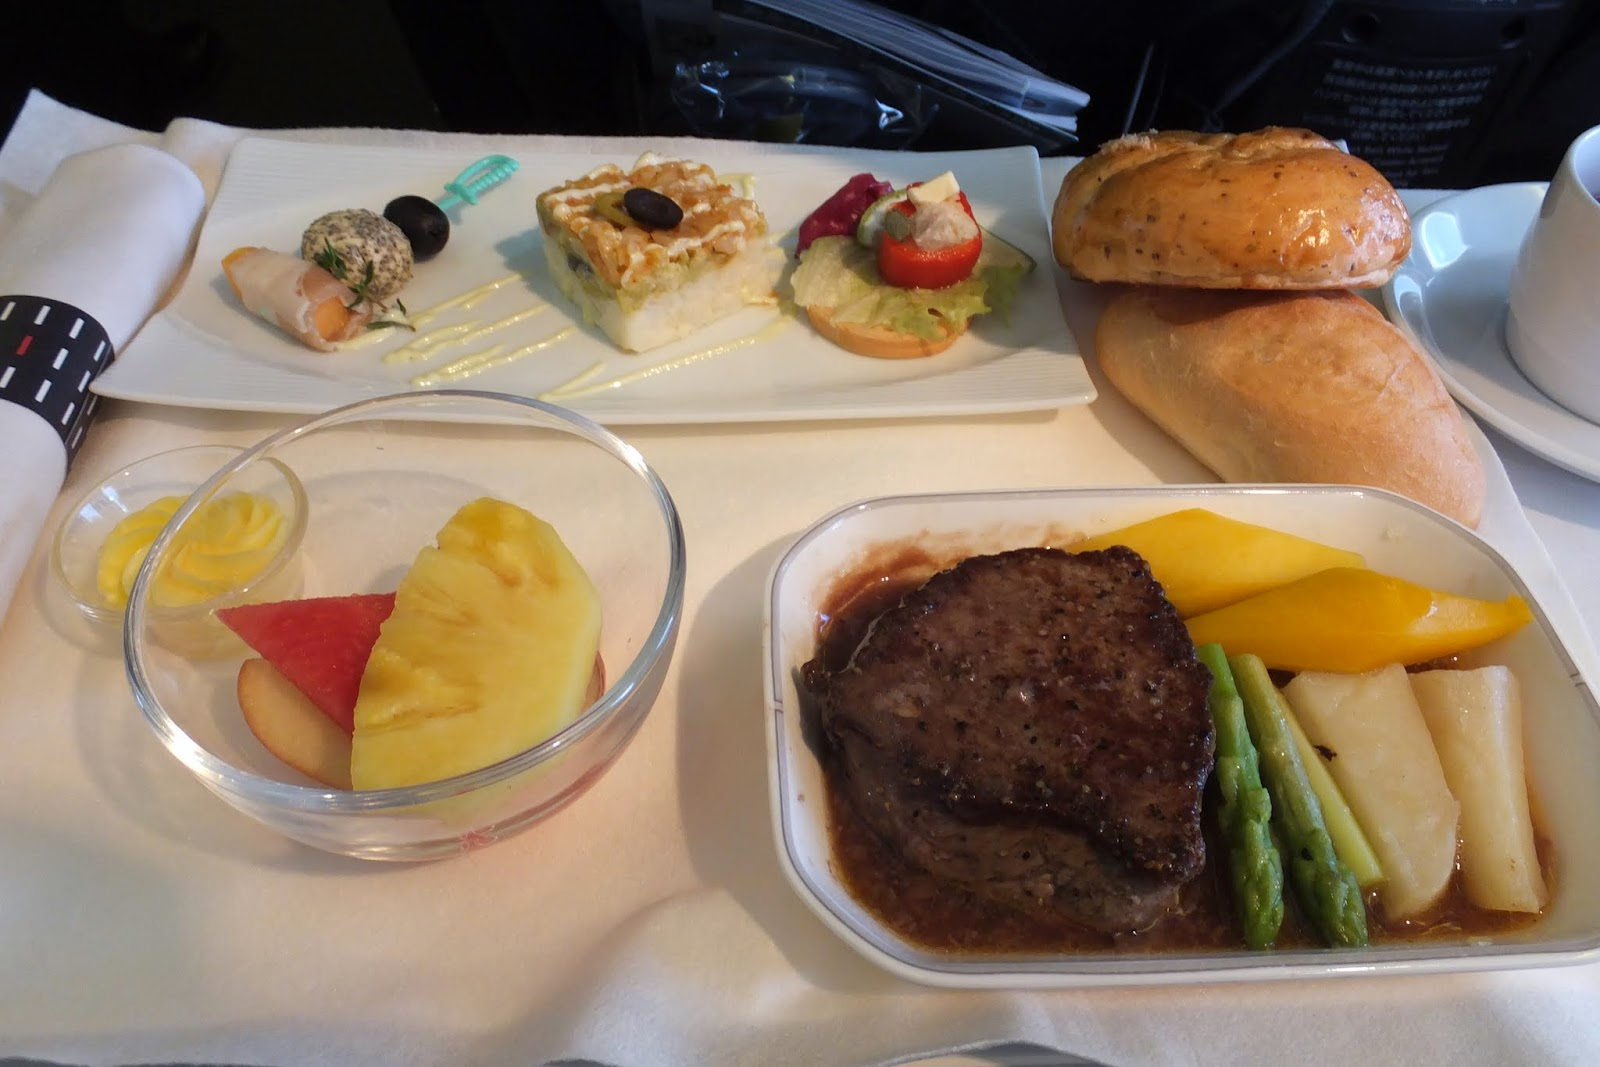 jal-businessclass-flight-meal-steak1